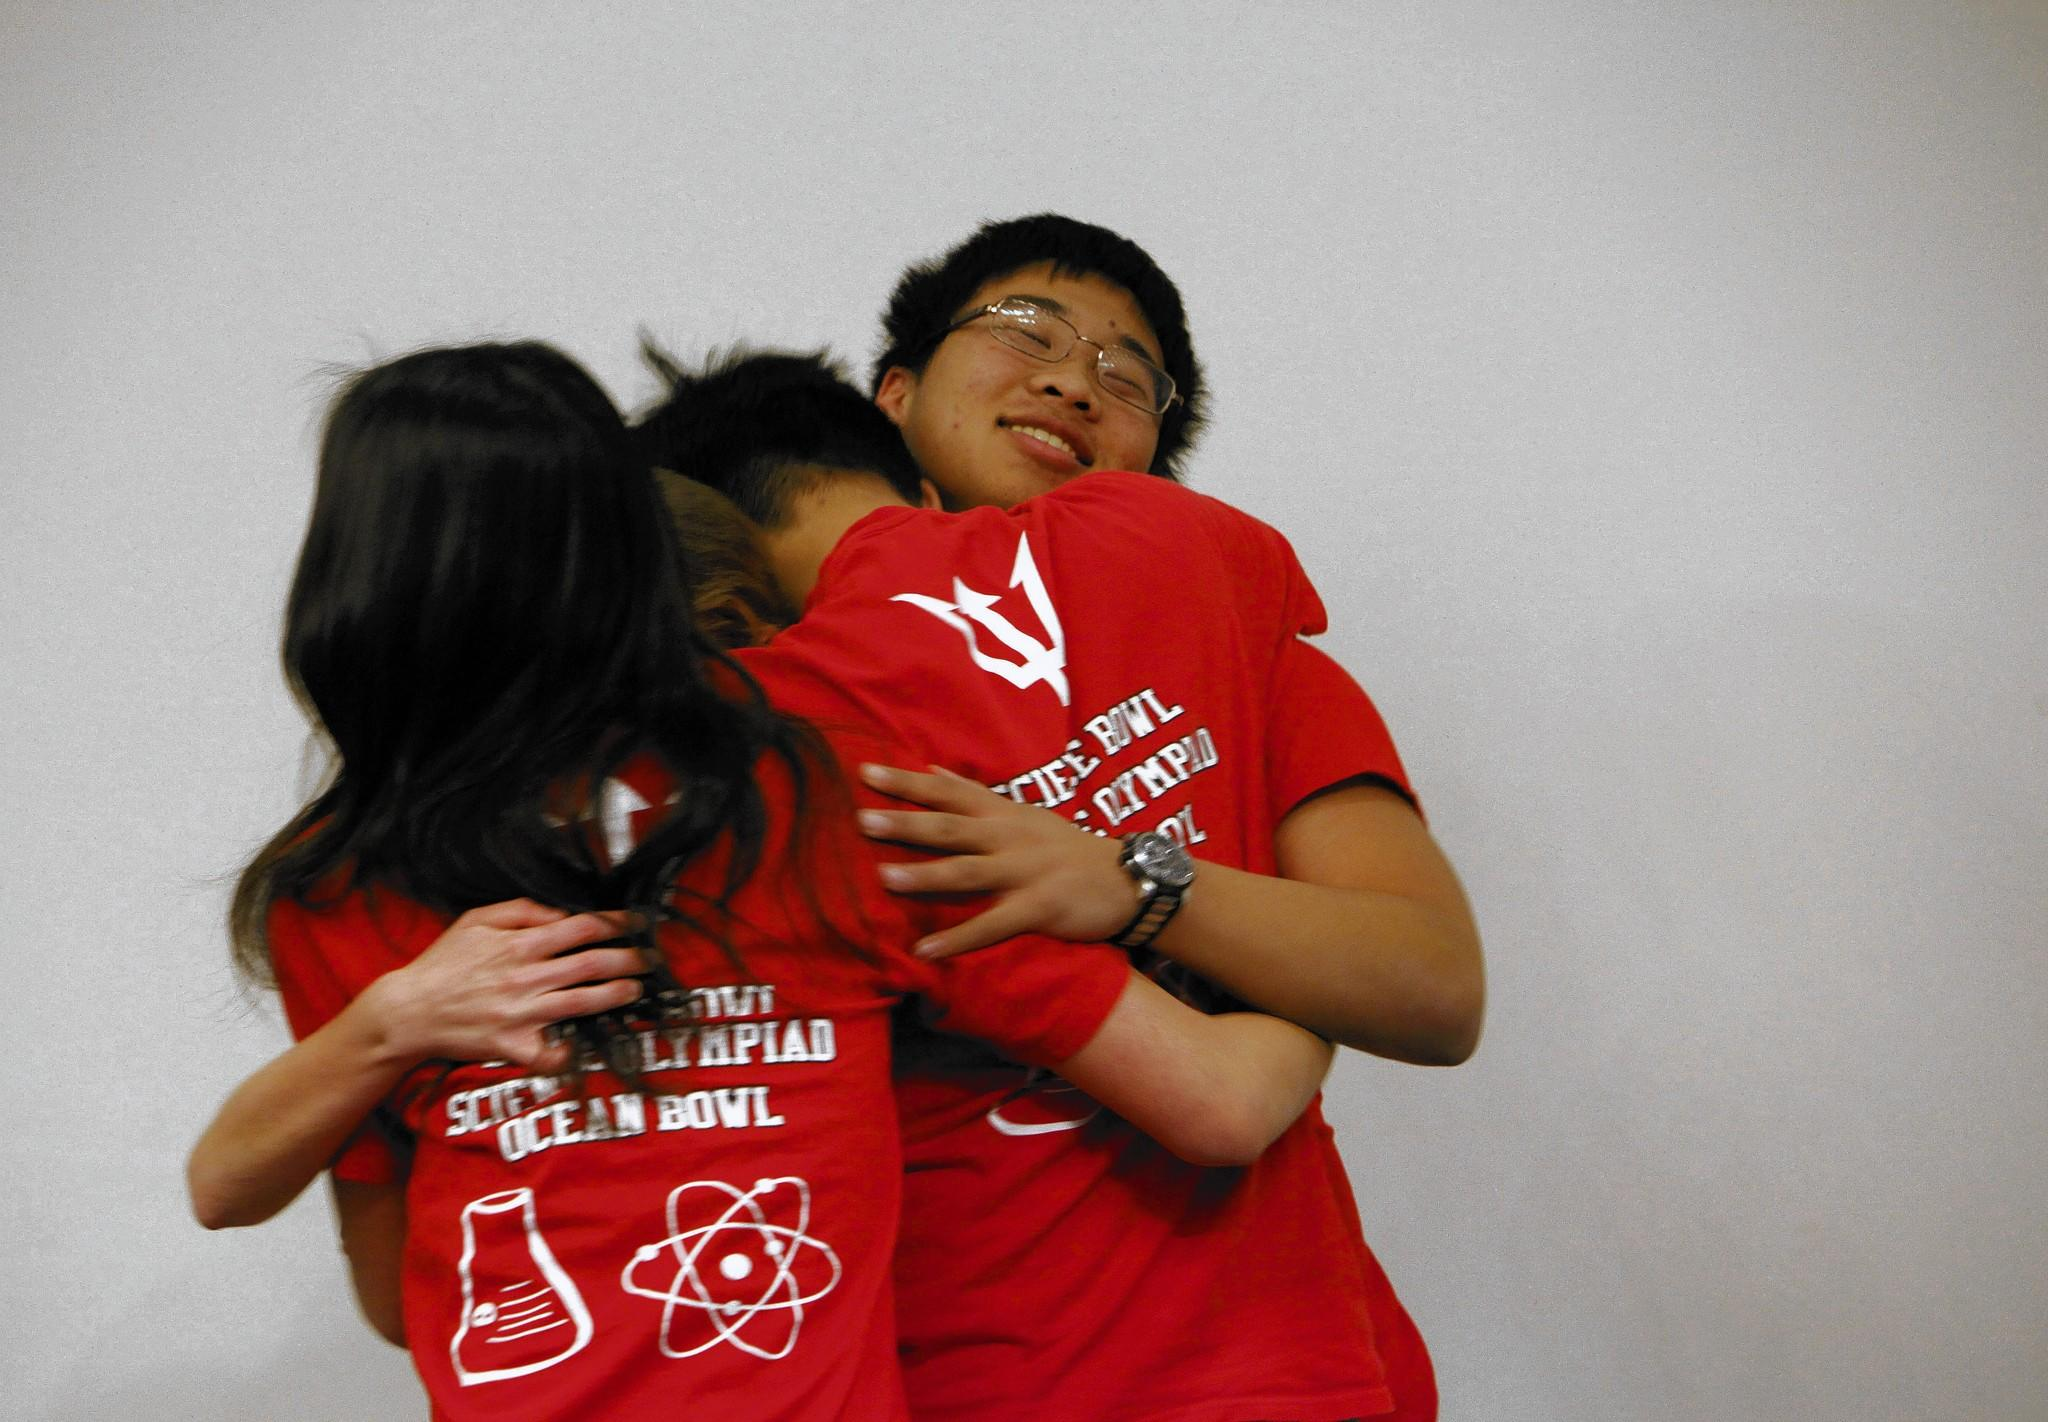 Members of the Palos Verdes High School team share a group hug after winning a match during the Regional Science Bowl at NASA's Jet Propulsion Laboratory. Left to right are Jessica Chen, Zoe Caron, Royce Chen and Kevin Jiao.